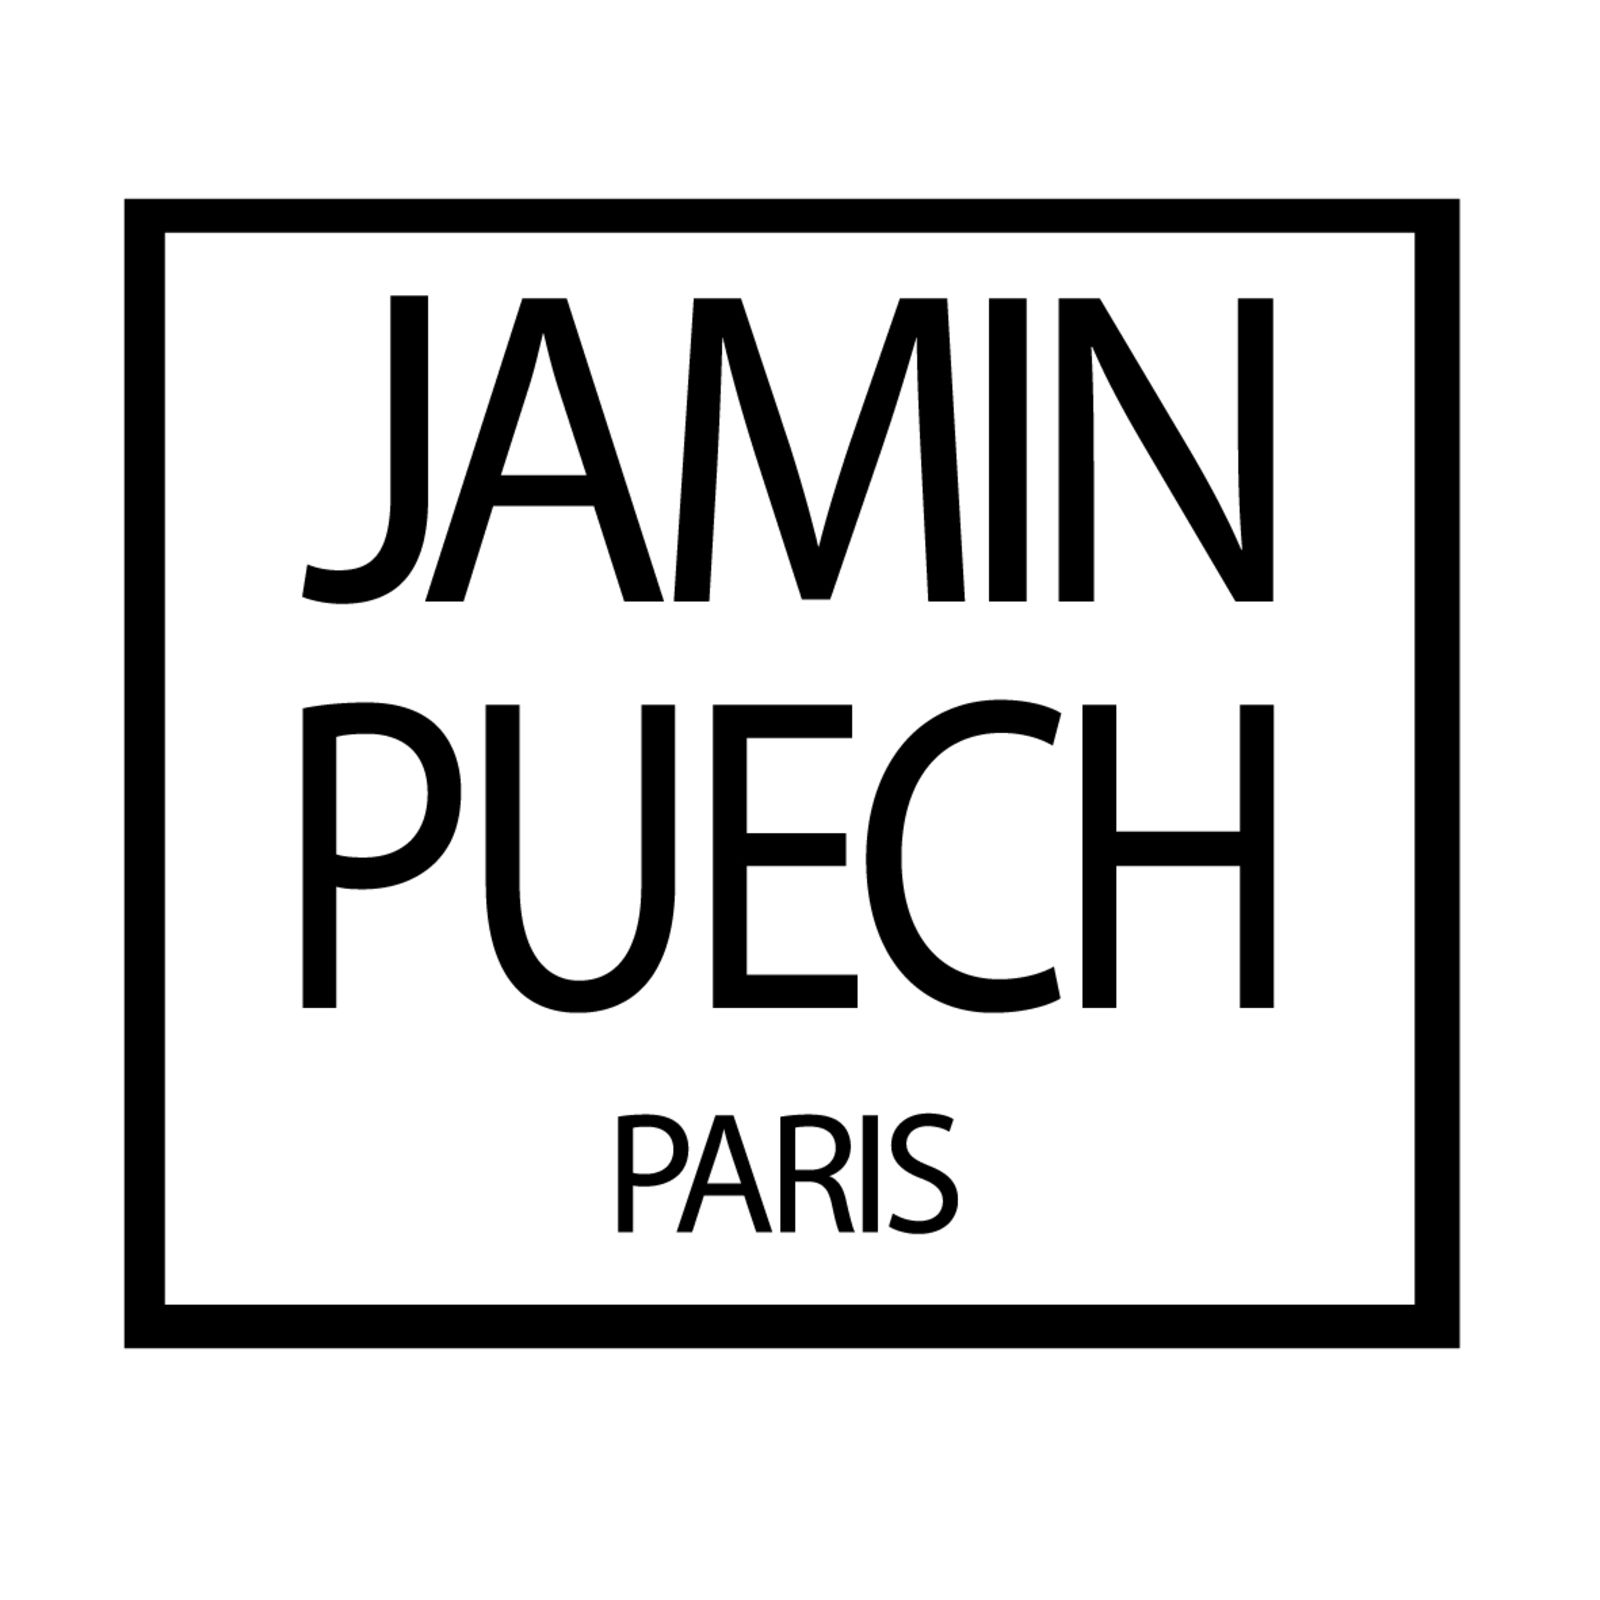 JAMIN PUECH PARIS